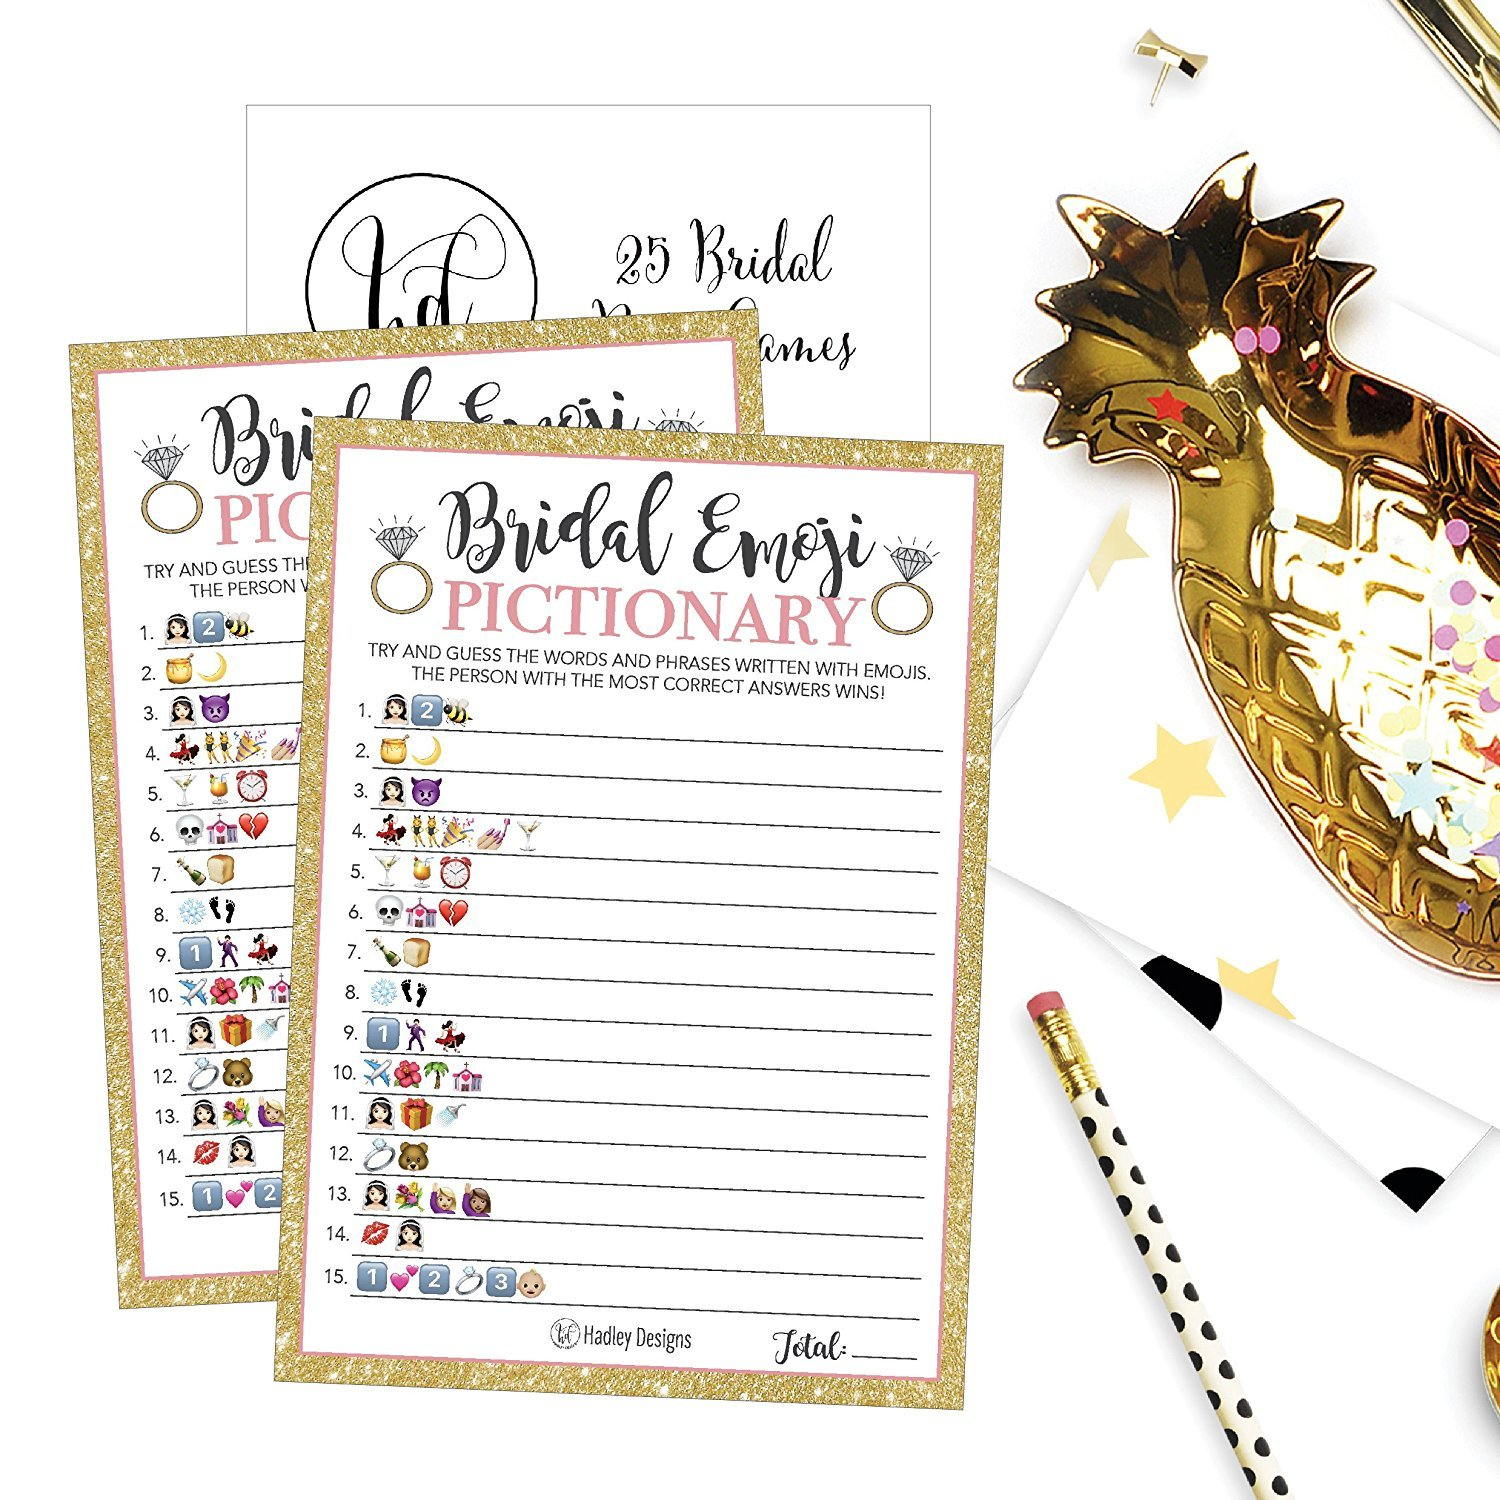 photo regarding Wedding Emoji Pictionary Free Printable identified as 25 Emoji Pictionary Bridal Shower Online games Recommendations, Marriage Shower, Bachelorette or Engagement Celebration For Adult males and Gals Partners, Adorable Amusing Board Package Package